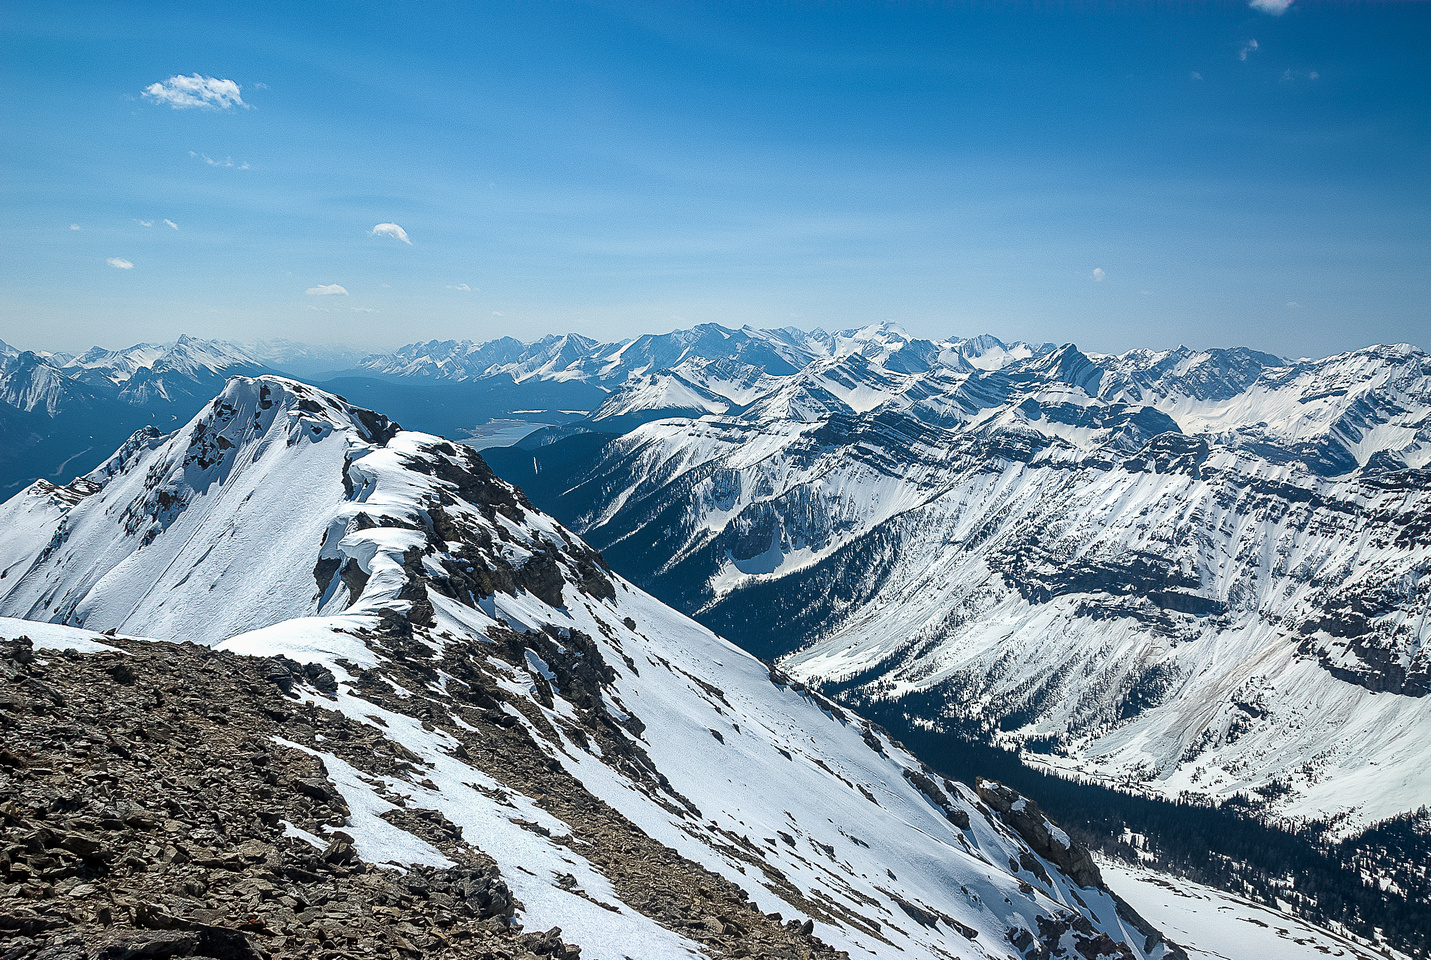 Sublime views south over the Kananaskis Lakes area with Highwood Pass just out of sight to the left.